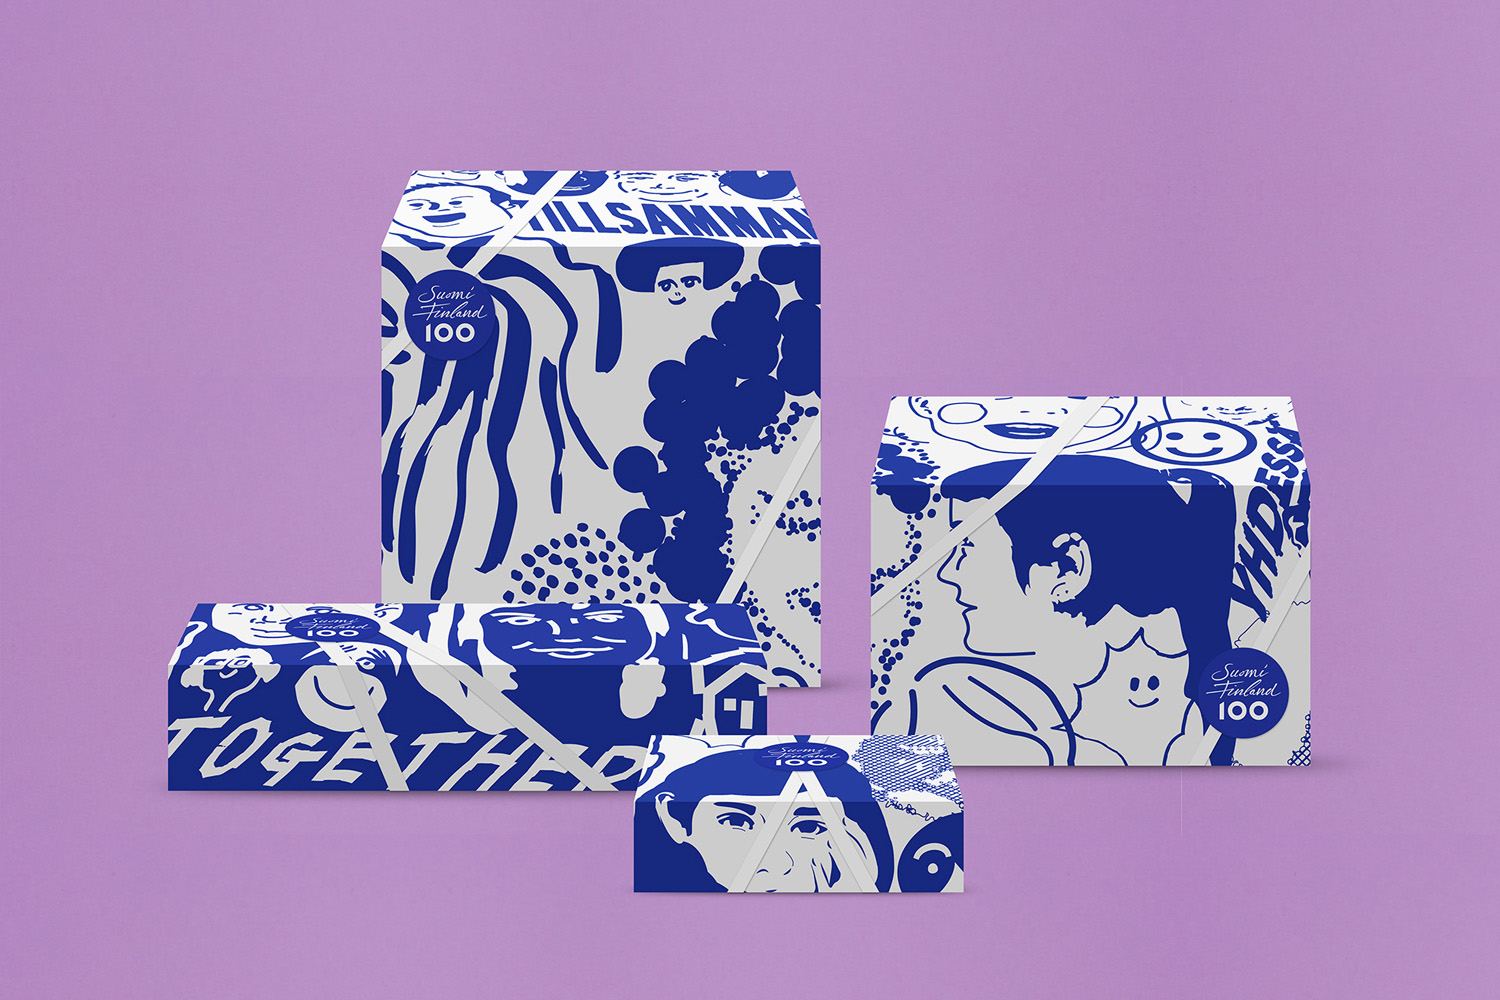 Brand identity, illustration and packaging by Kokoro & Moi for the celebration of Finland's centenary